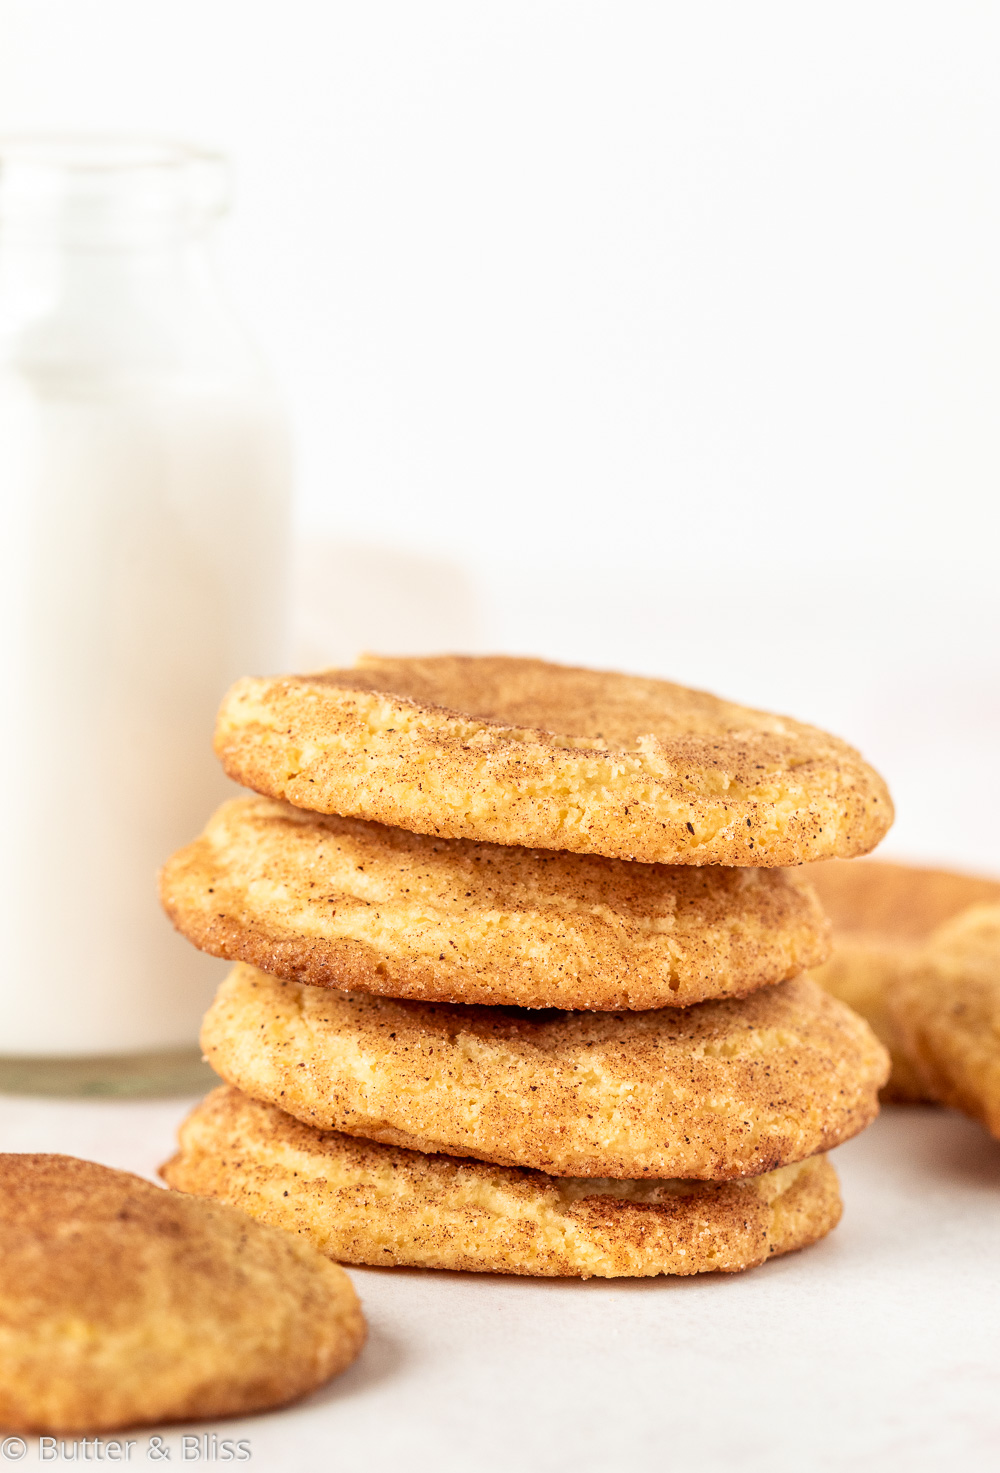 Snickerdoodles with a glass of milk